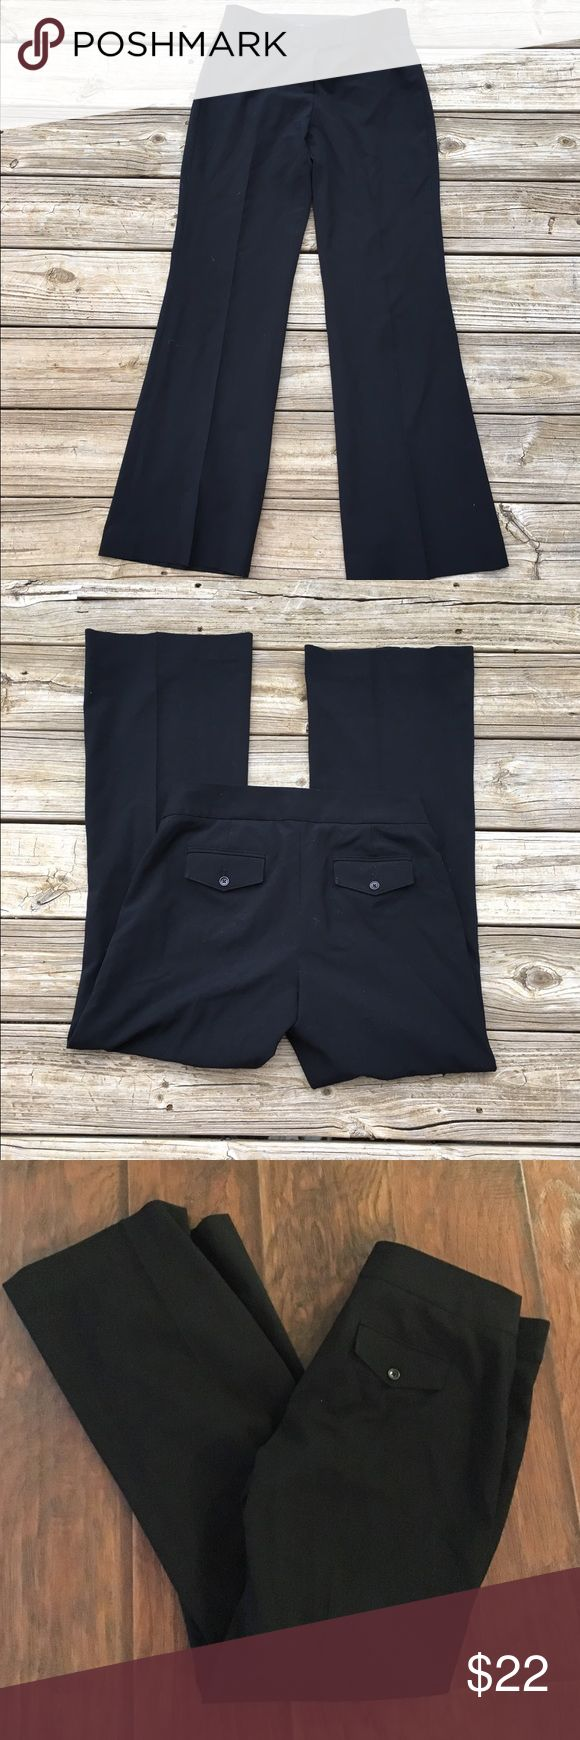 "Black Express trouser pants In like new condition and straight from the dry cleaners! Express ""columnist"" pants. Inseam is 31.5 inches. Thanks for looking.💕 Express Pants Trousers"